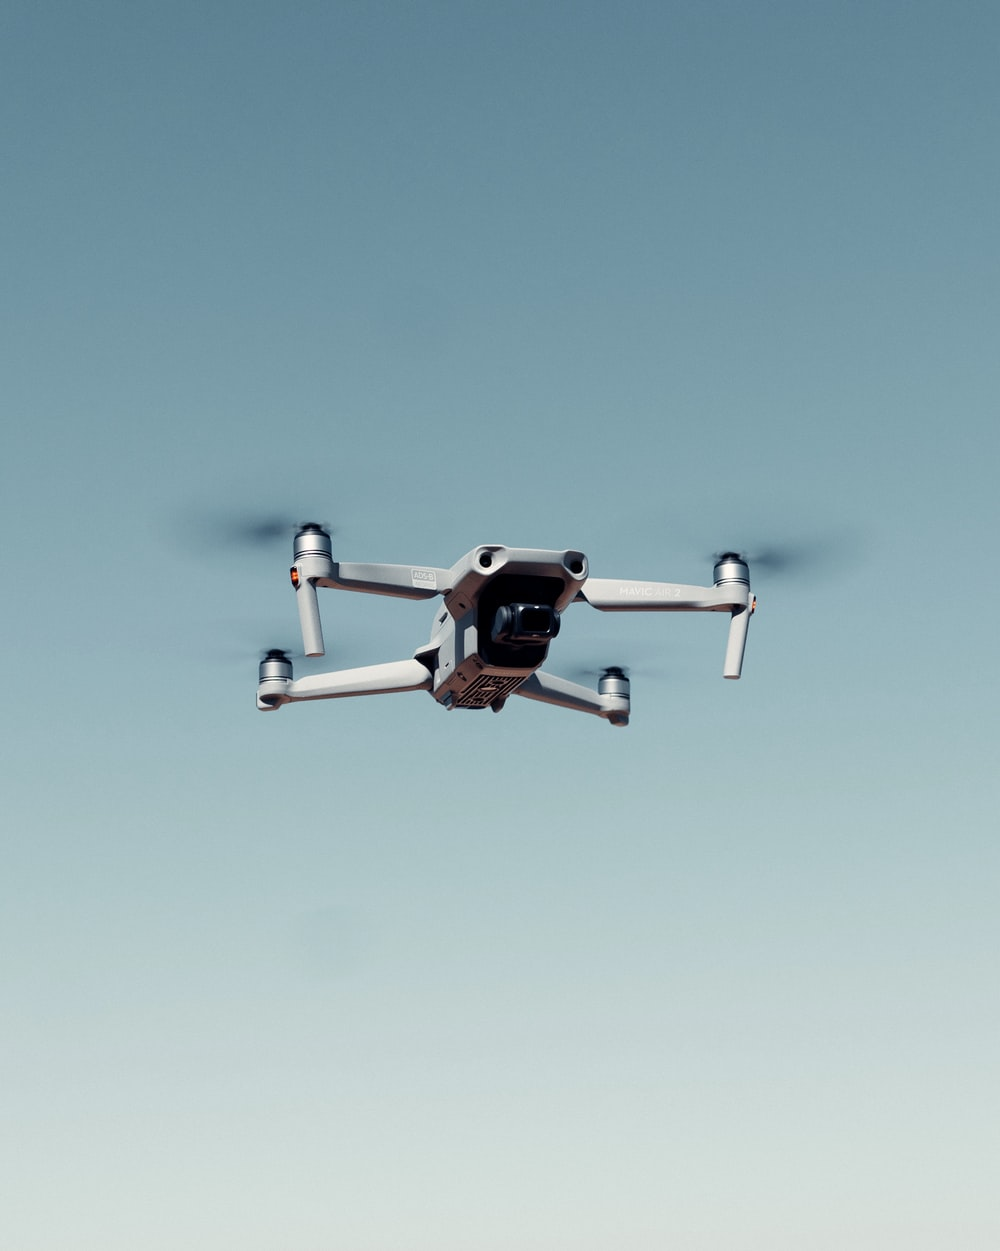 black and white drone flying under blue sky during daytime